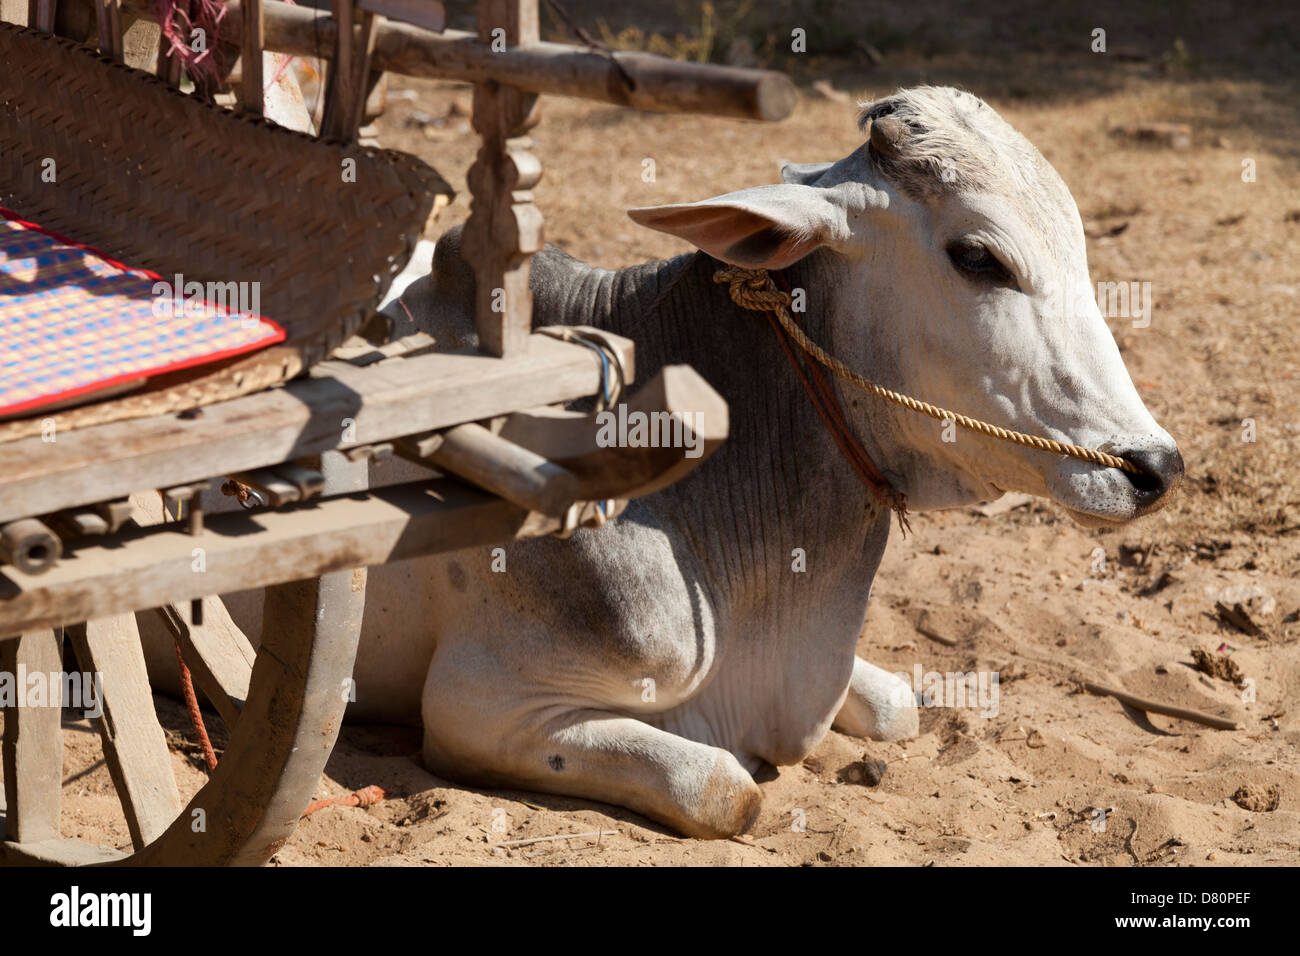 Bullock resting by his cart in Mingun, Myanmar - Stock Image